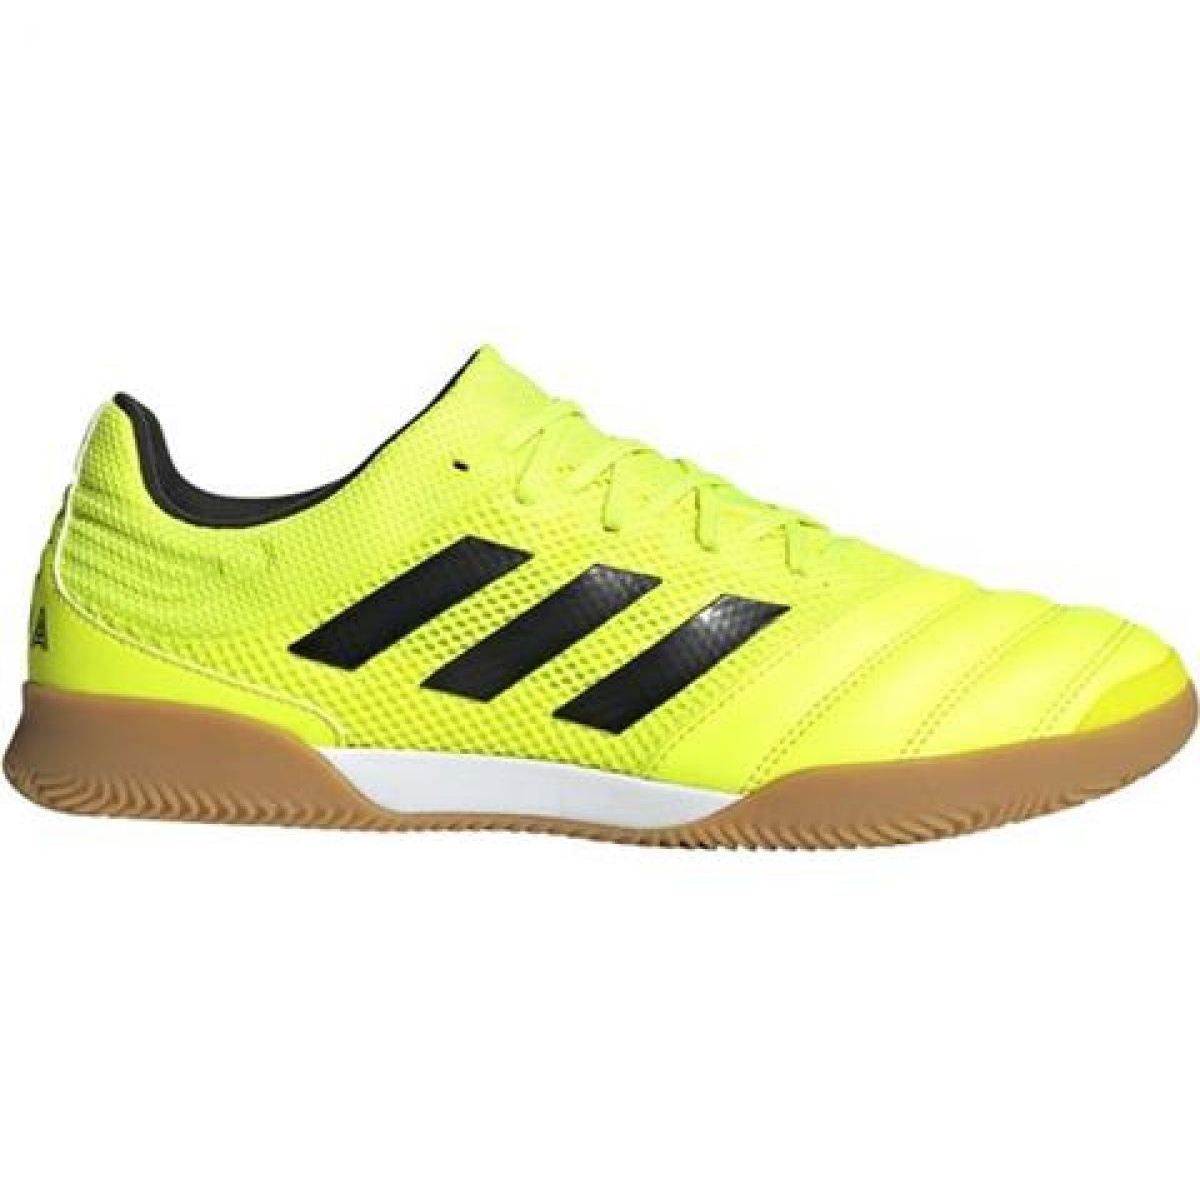 Adidas Top Sala Indoor Soccer Shoes Designed Shoes Nmd